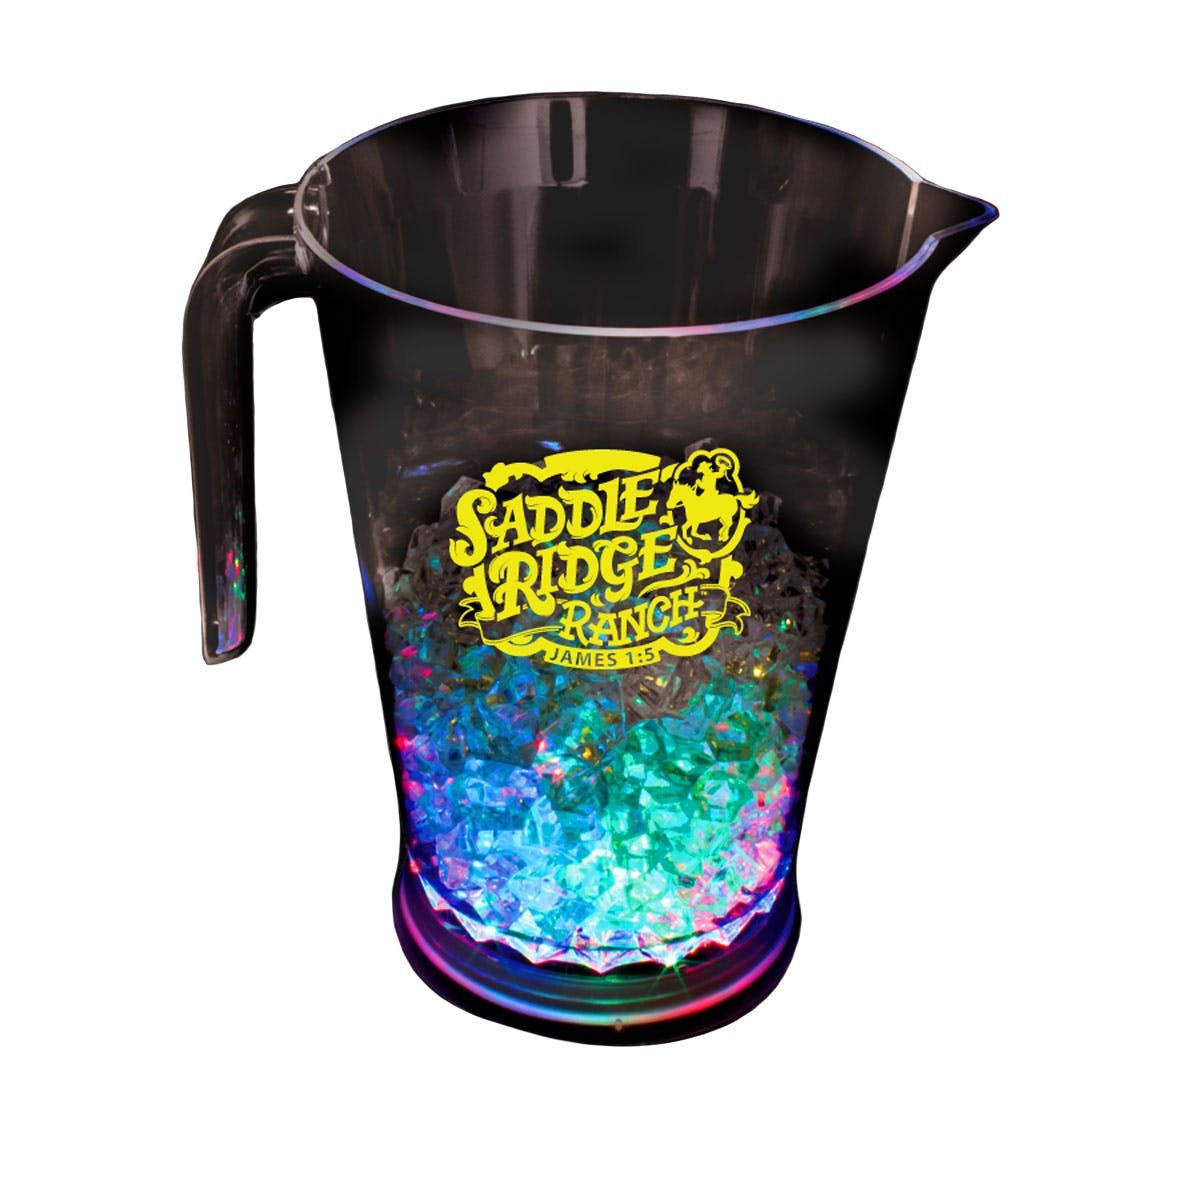 48 Oz. Light-Up Pitcher (Item # DAMLU-ELMTN) Beer pitcher sold by InkEasy